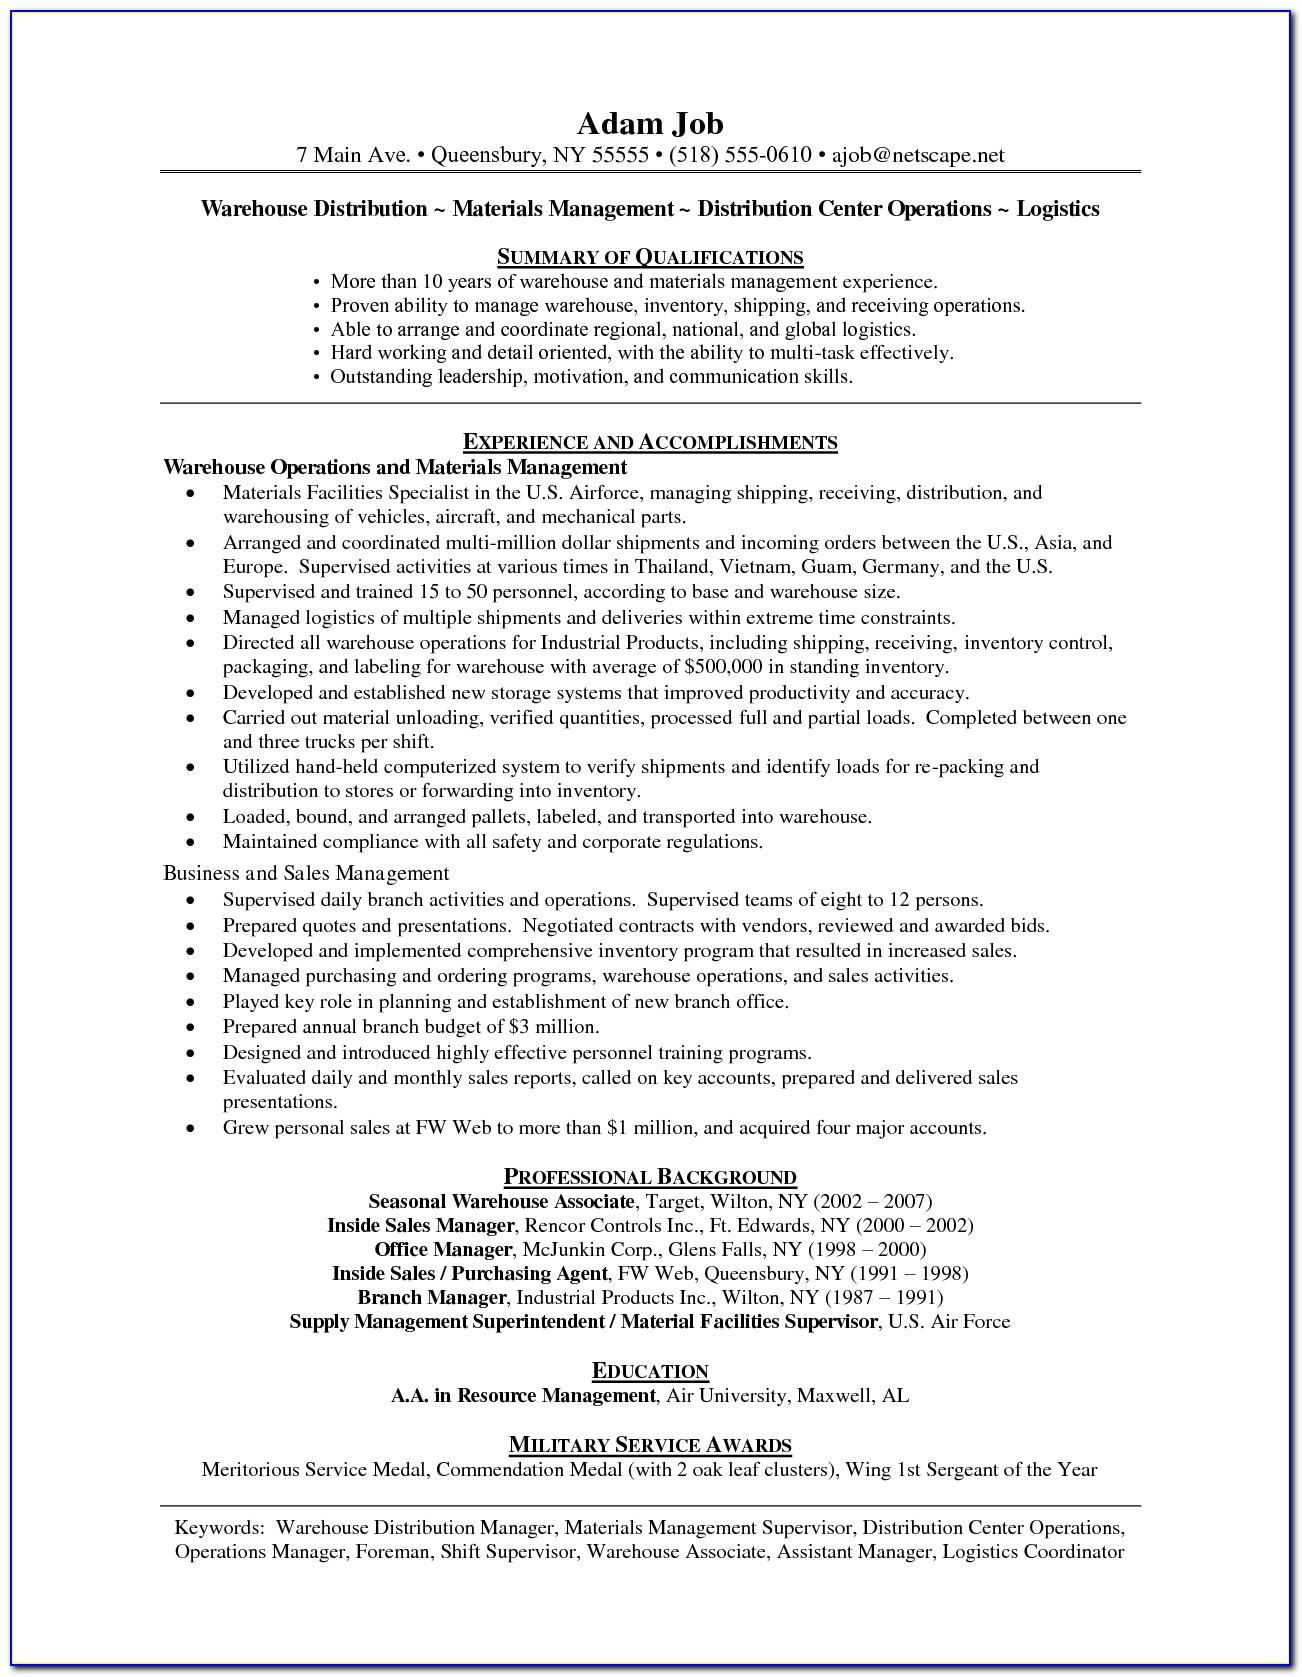 Warehouse Operations Manager Job Description For Resumewarehouse Operations Manager Job Description For Resume